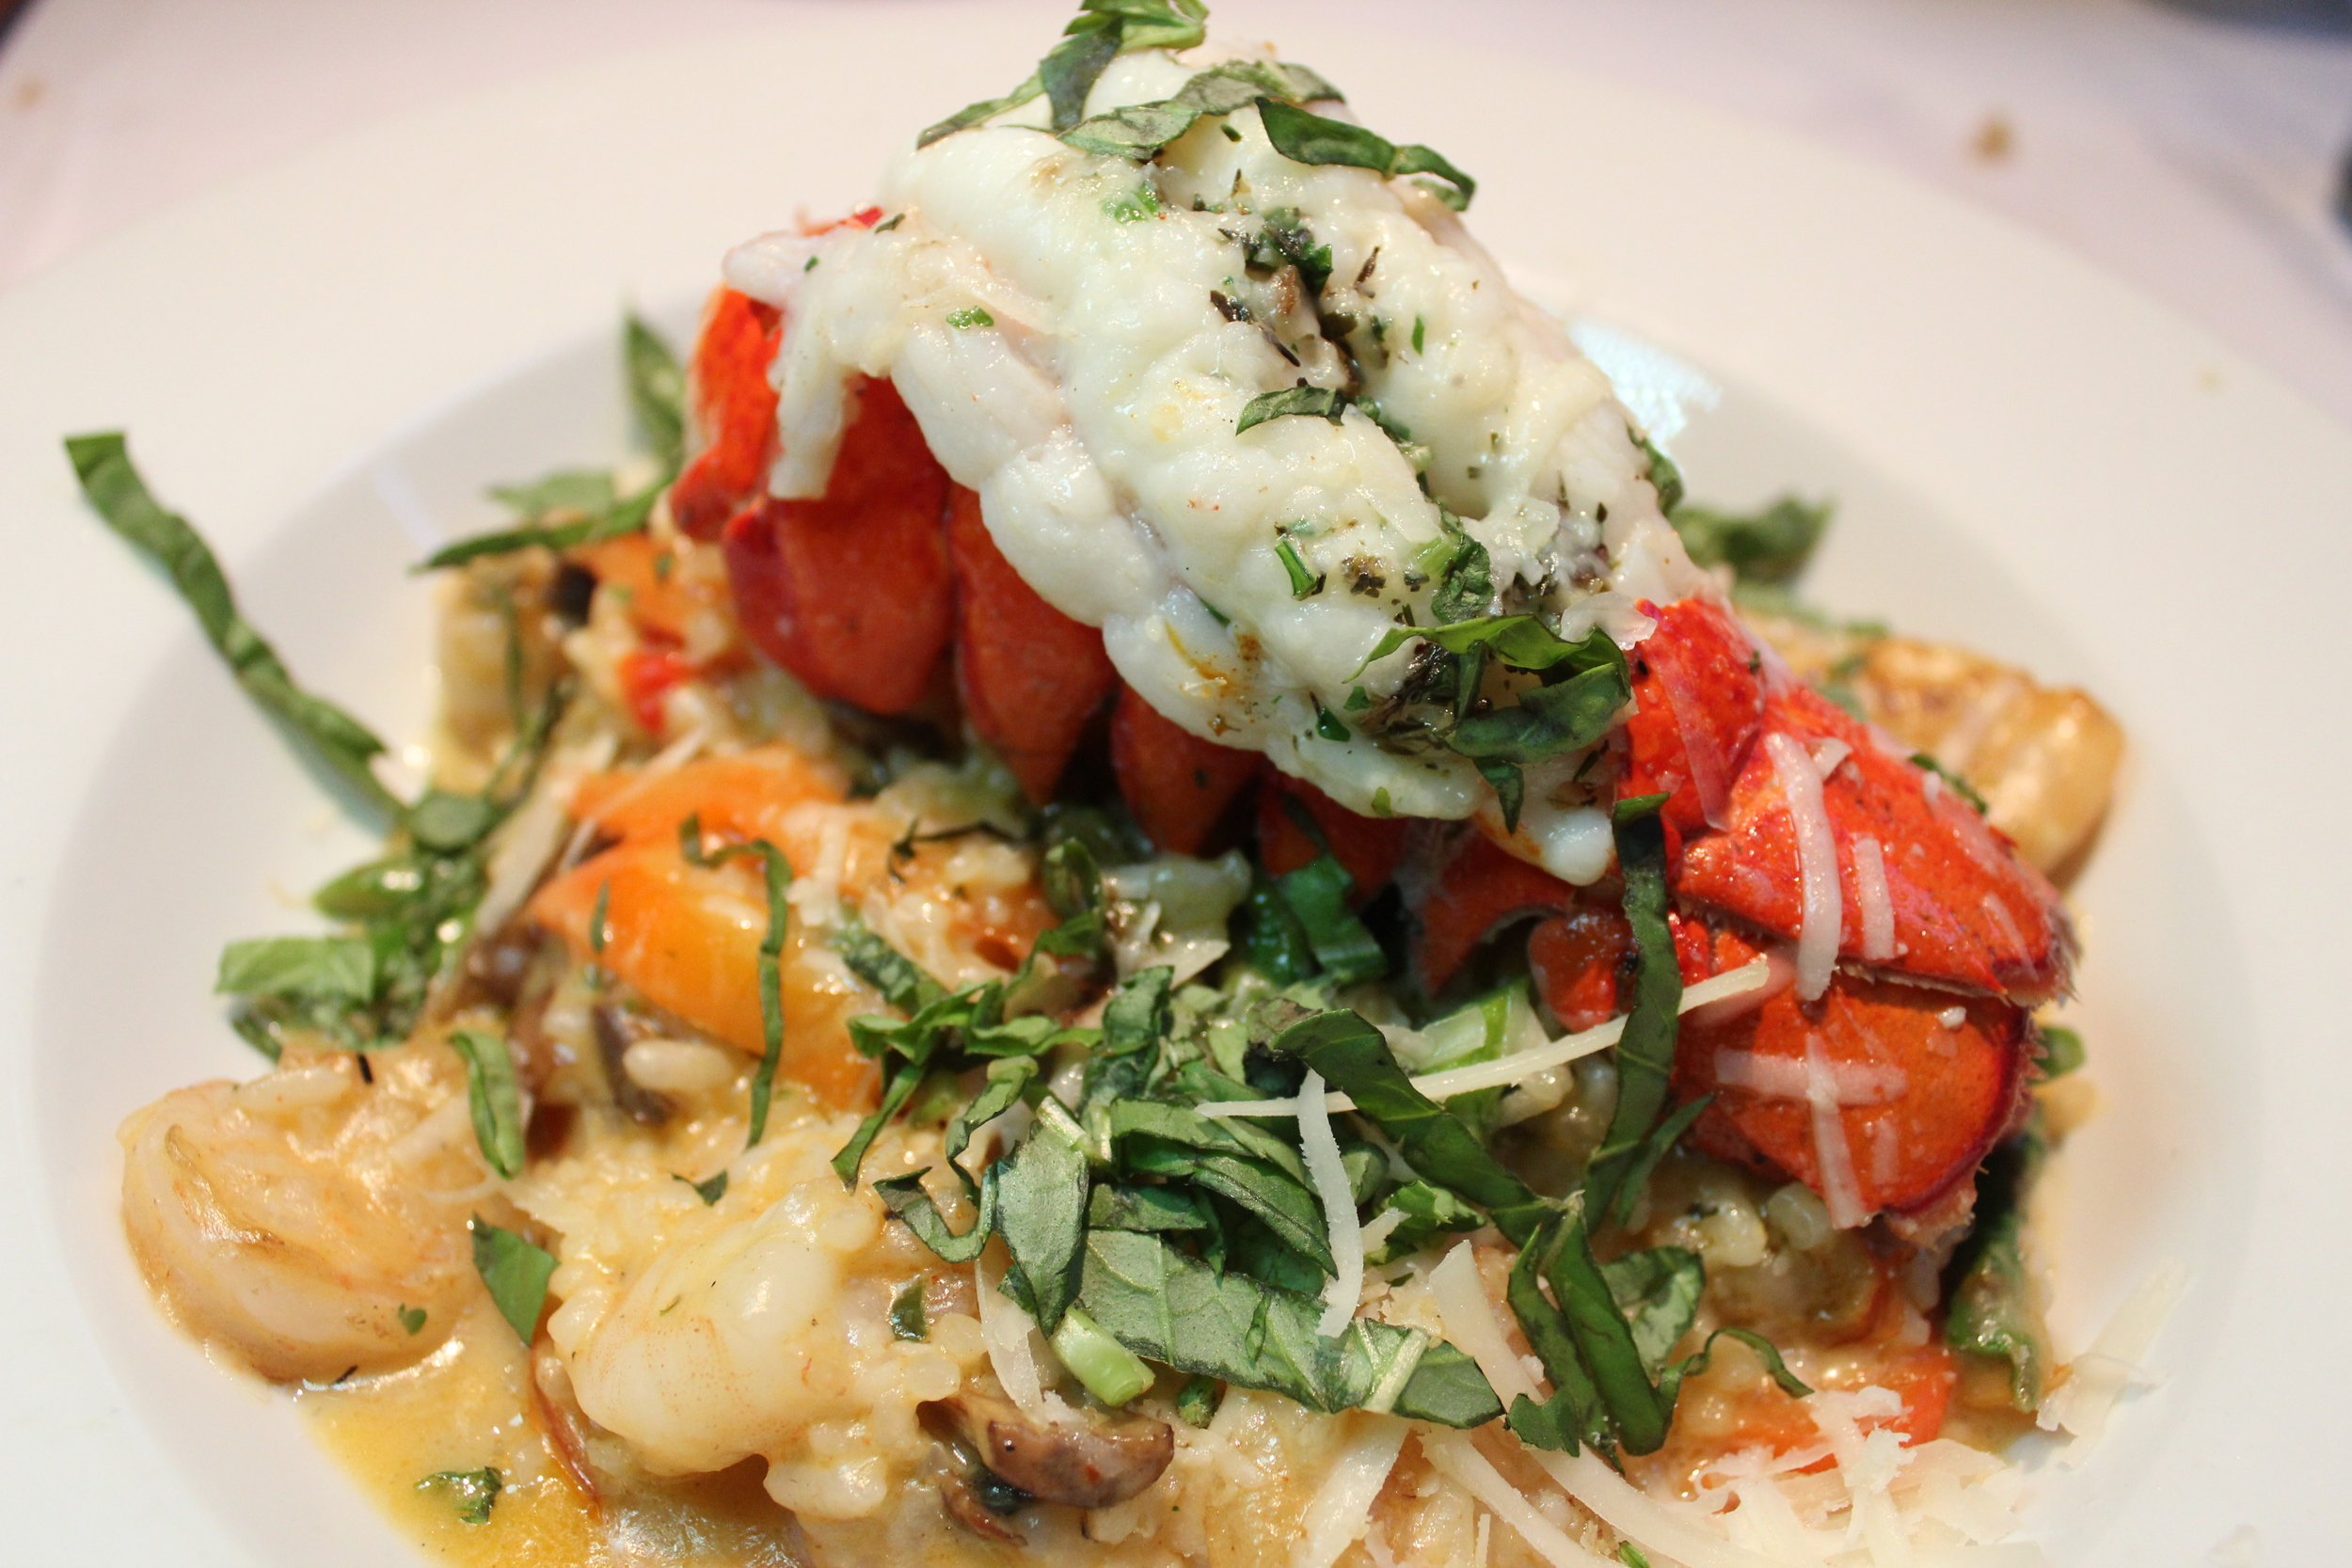 Cold Water Lobster Tail with Shrimp Risotto   Made with mushrooms, roaster red peppers, asparagus, basil and Parmesan topped with a broiled lobster tail.